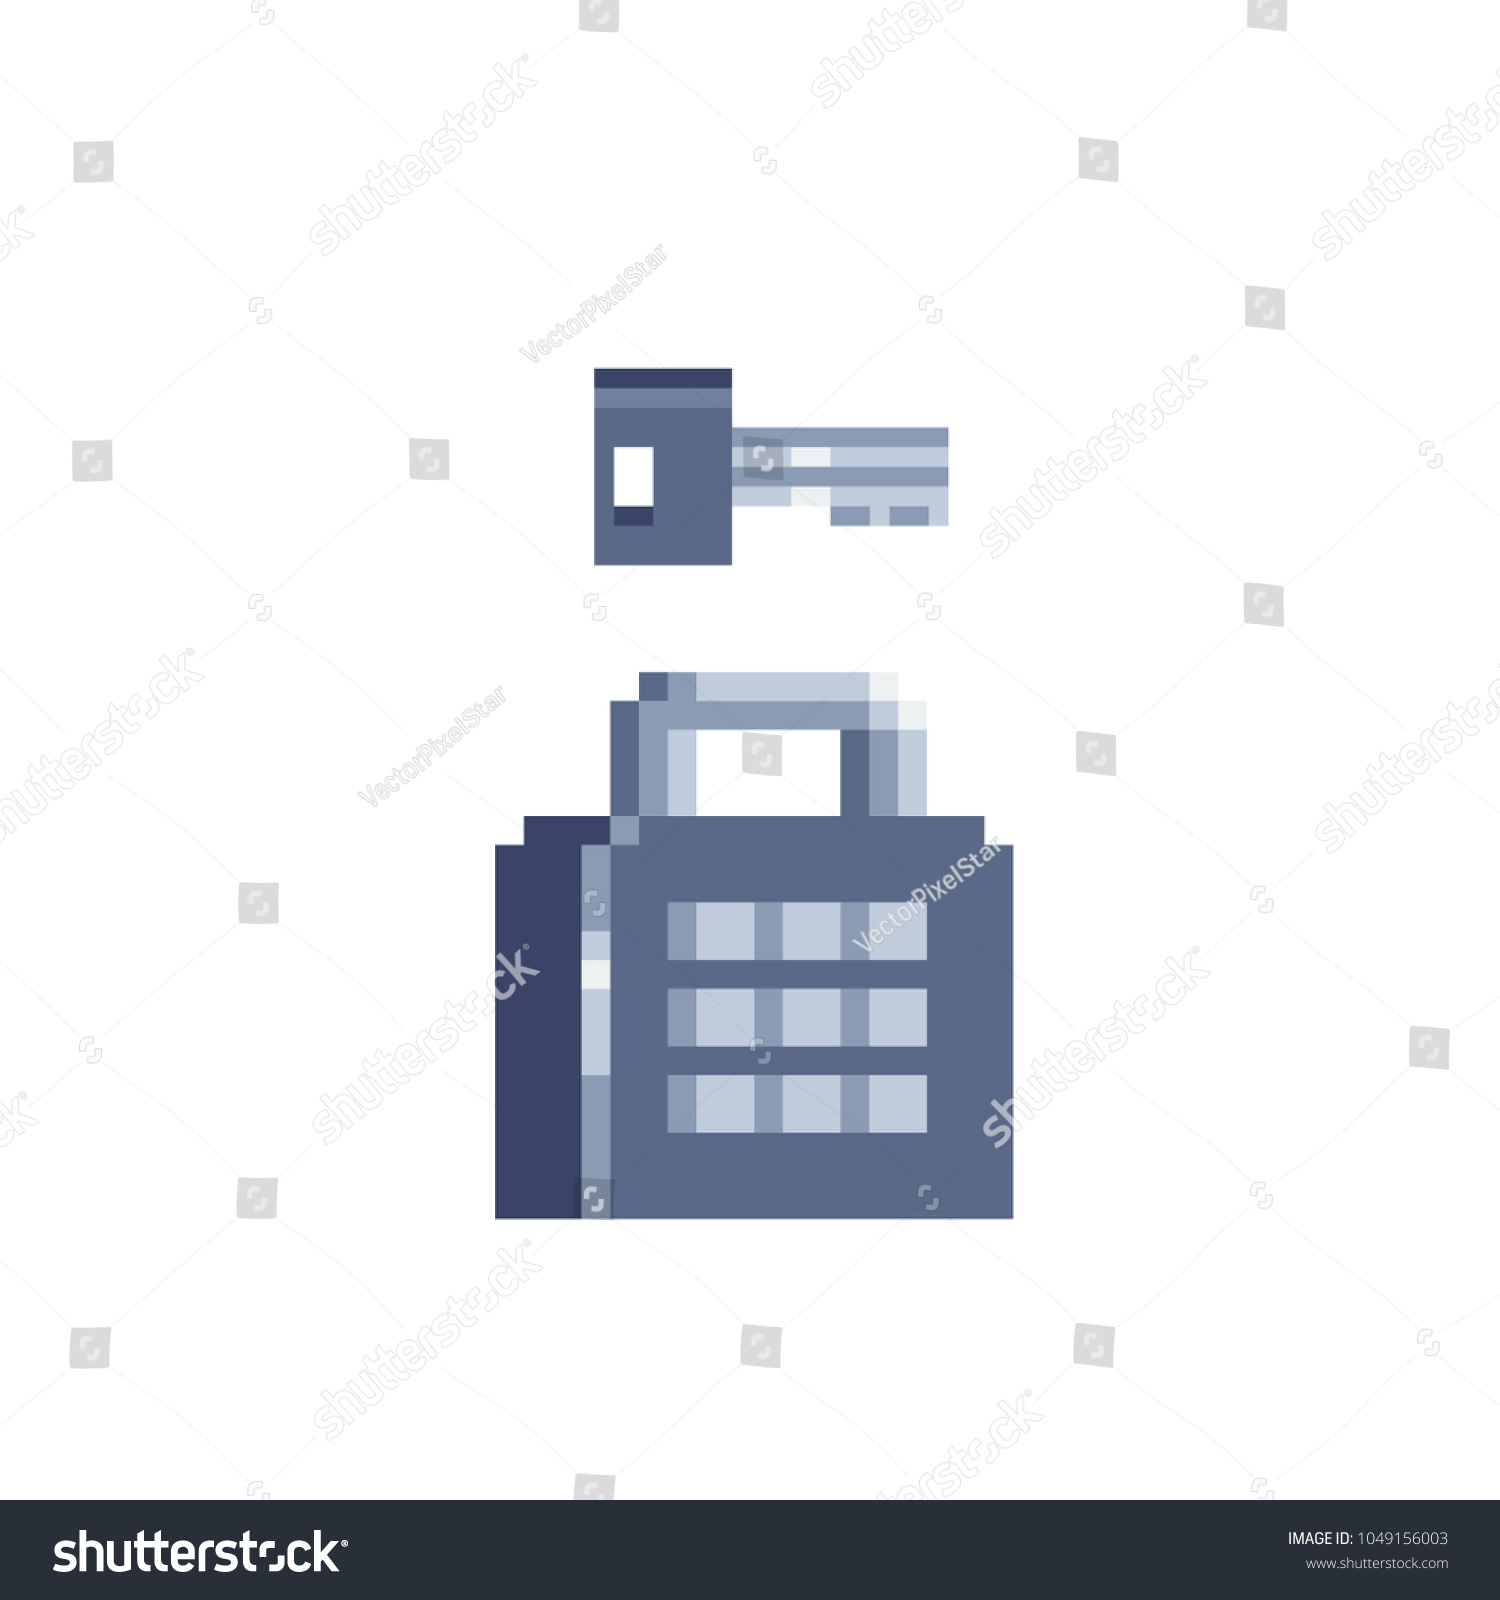 Key Combination Lock Pixel Art Flat Stock Vector Royalty Free Diagram And Style Icon Design Of Websites Logo